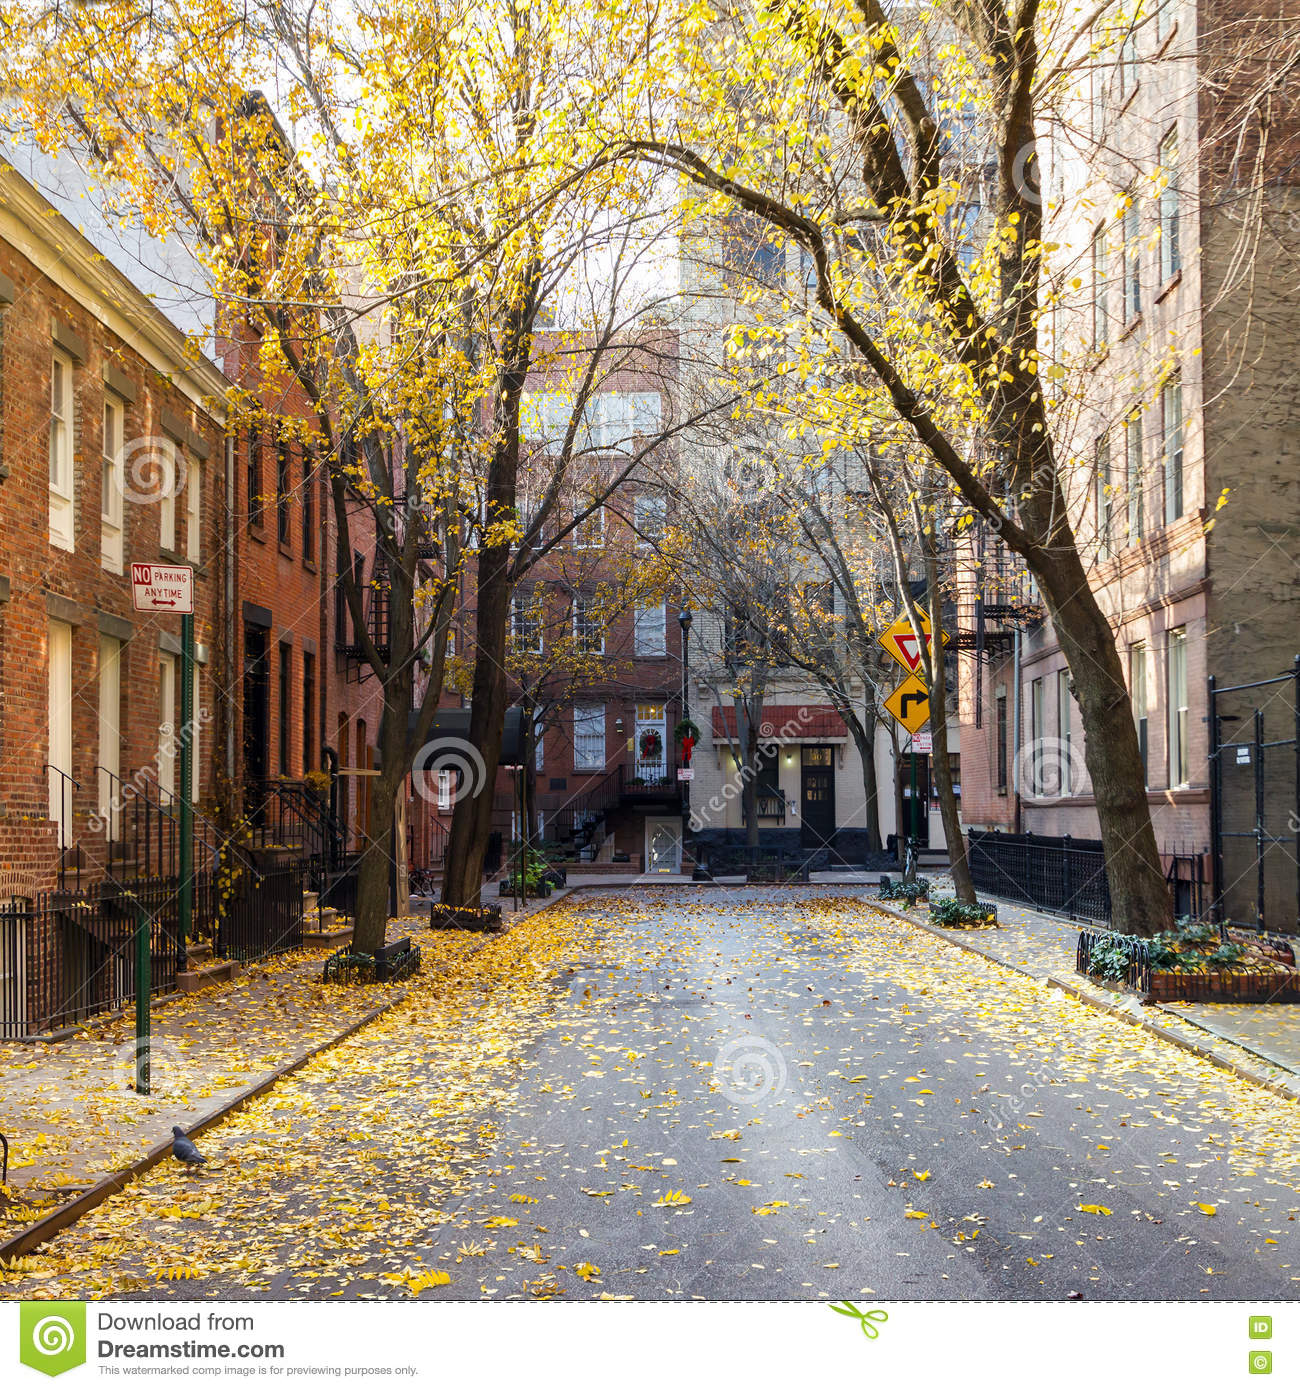 New York City Apartment Streets: New York City Block In The Greenwich Village Neighborhood